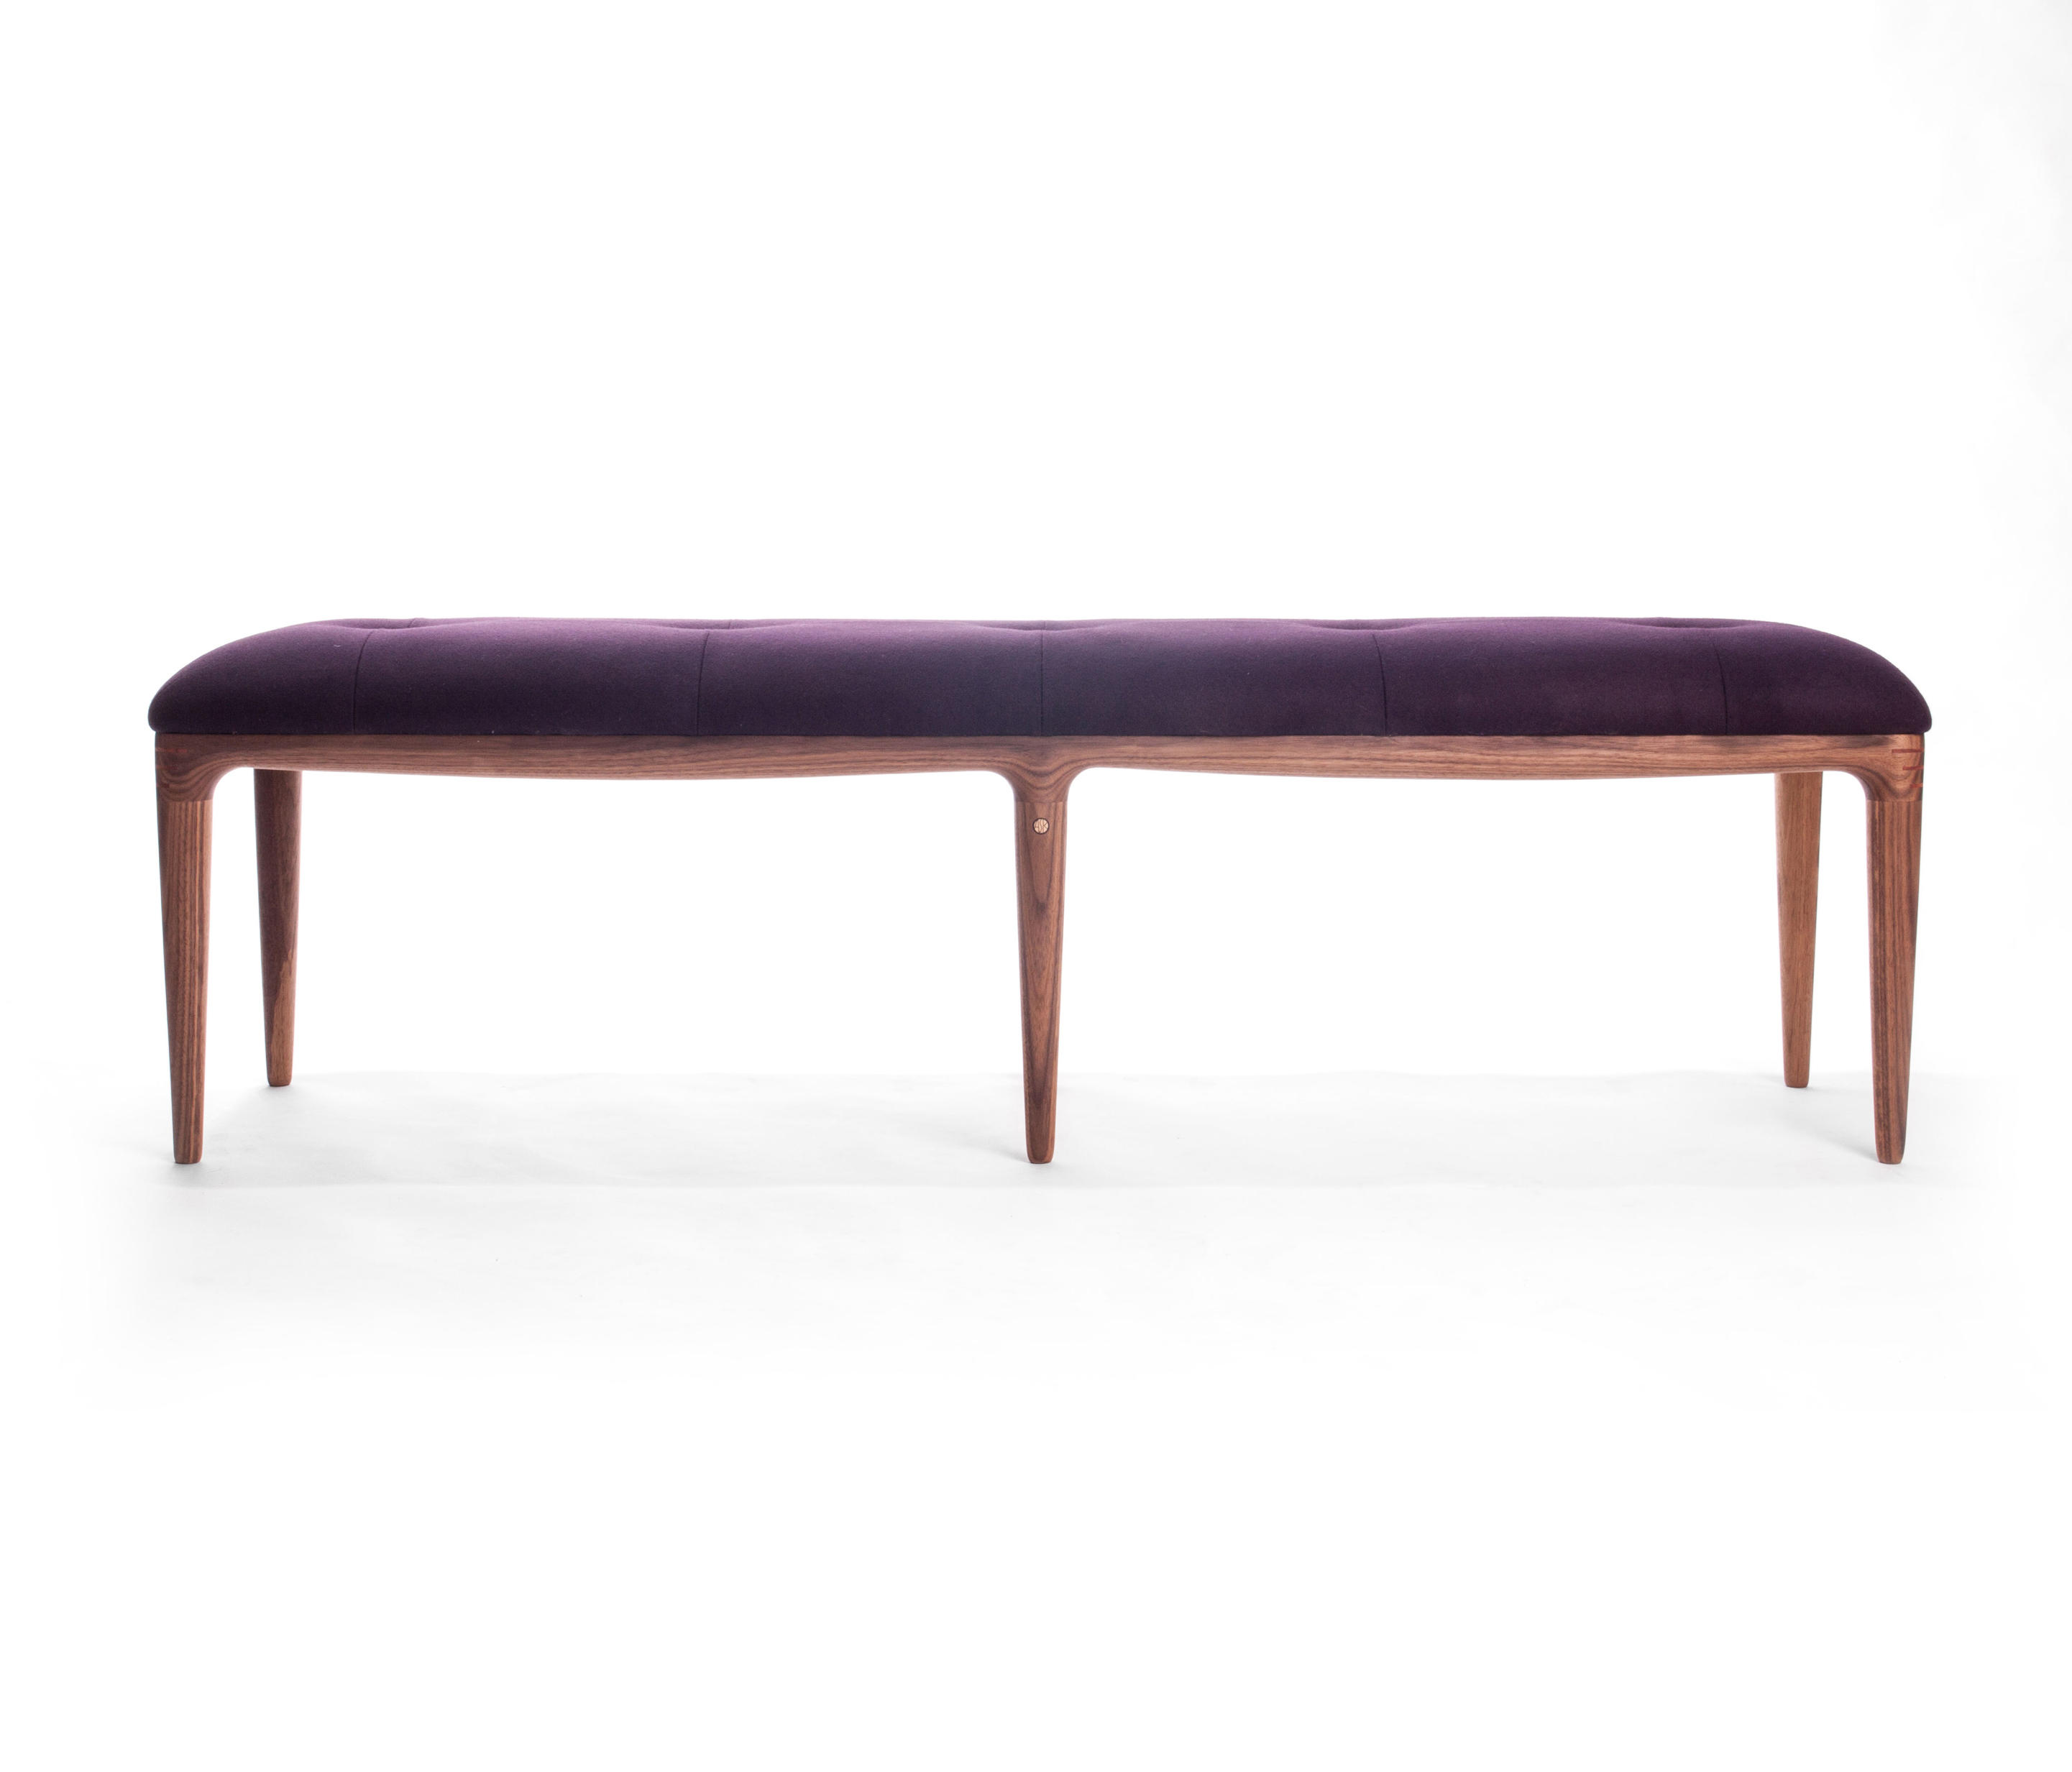 Remarkable Dormo Bench Benches From Ask Emil Architonic Pabps2019 Chair Design Images Pabps2019Com